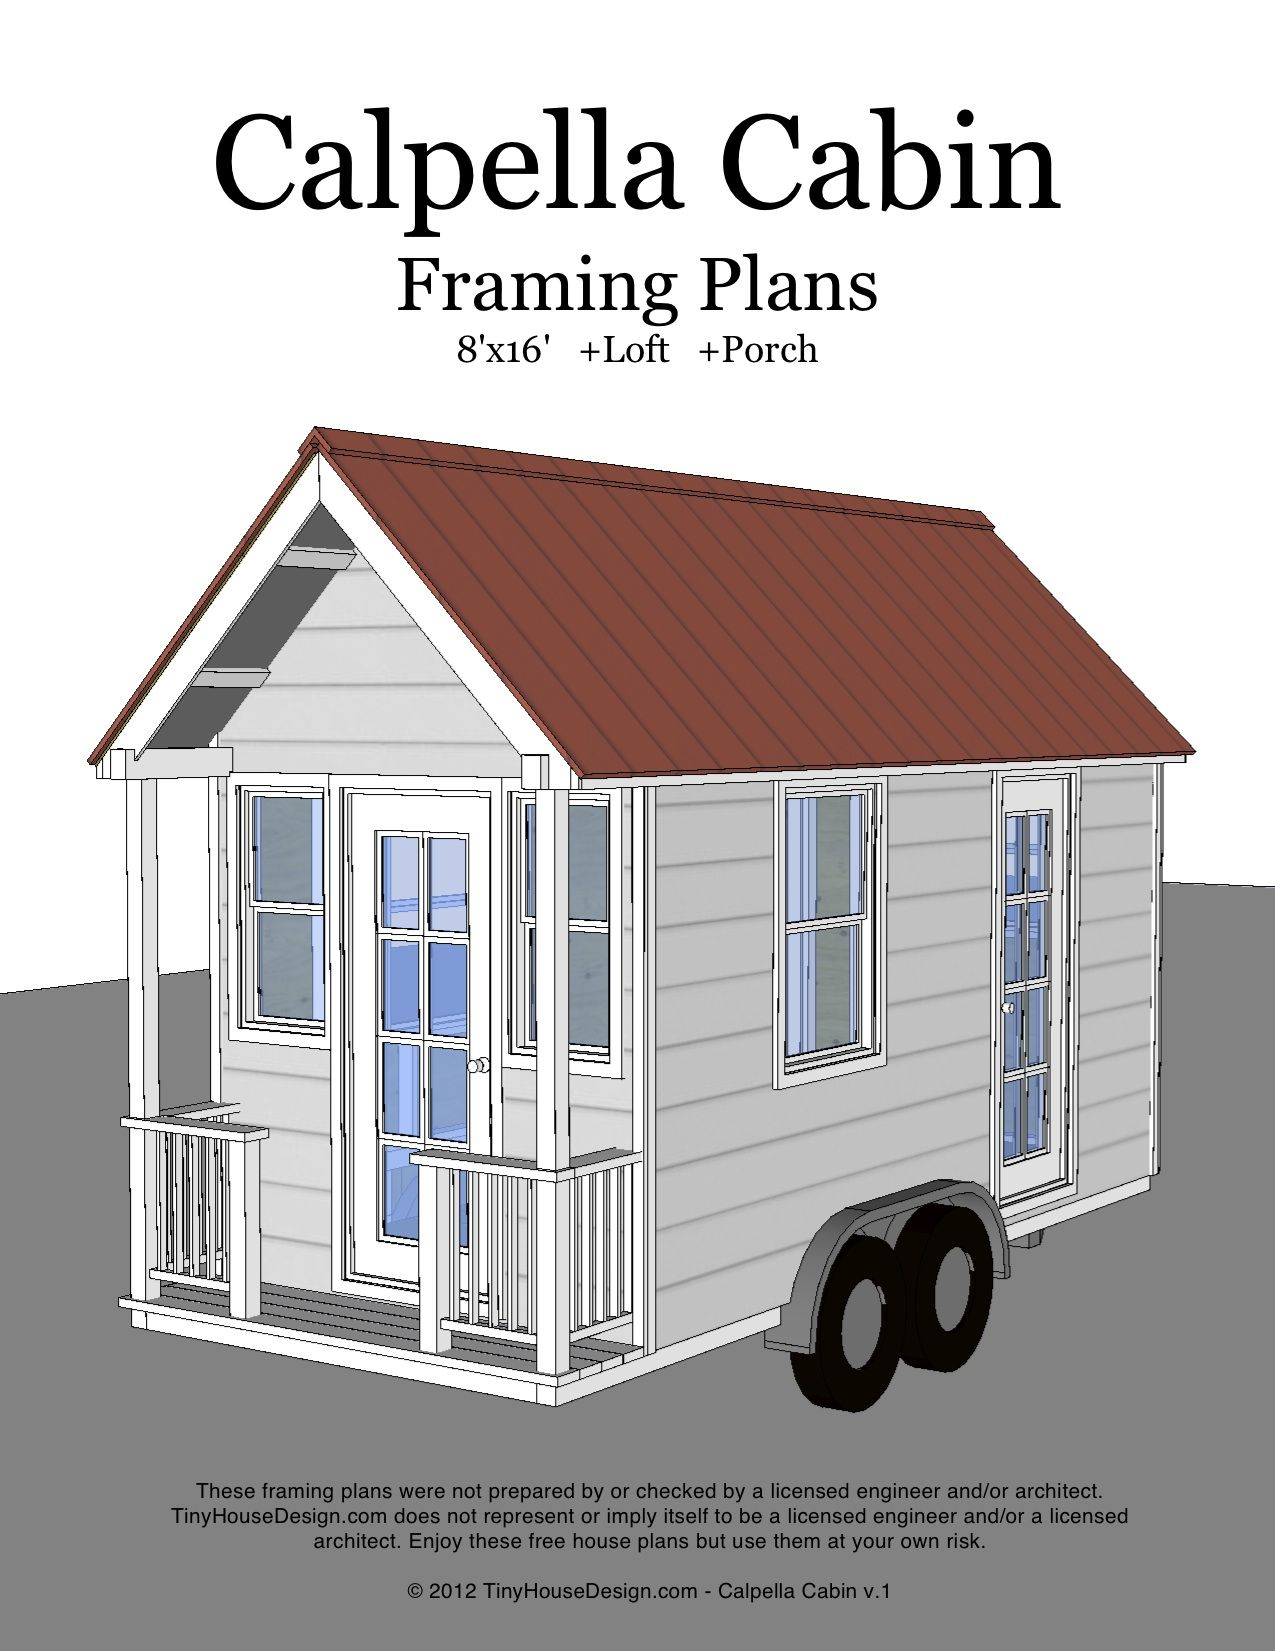 Calpella Cabin 8x16 v1 - cover - this Floor Plan. Minus the ... on mobile home front designs, mobile home entryway designs, mobile home staircase, mobile home add ons, simple deck designs, mobile home yard designs, mobile home landscape designs, mobile home bathroom flooring, mobile home gazebo plans, mobile home screen porch, mobile home brick designs, mobile home fireplace designs, mobile home carport designs, mobile home siding designs, mobile home room designs, mobile home porch models, small deck designs, mobile home interior designs, mobile home stairs designs, mobile home deck,